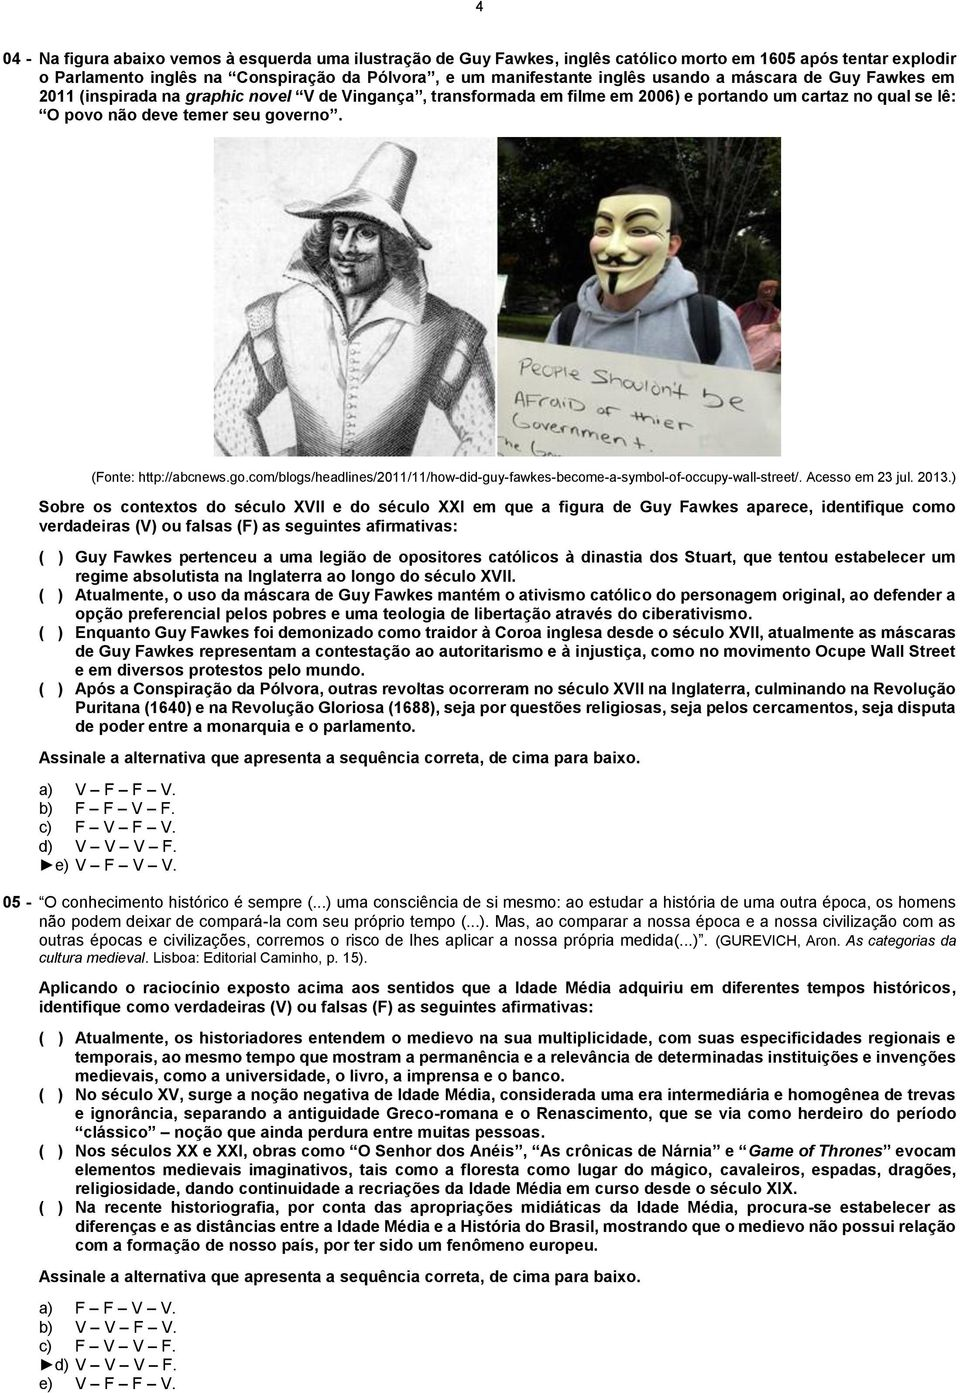 (Fonte: http://abcnews.go.com/blogs/headlines/011/11/how-did-guy-fawkes-become-a-symbol-of-occupy-wall-street/. Acesso em 3 jul. 013.